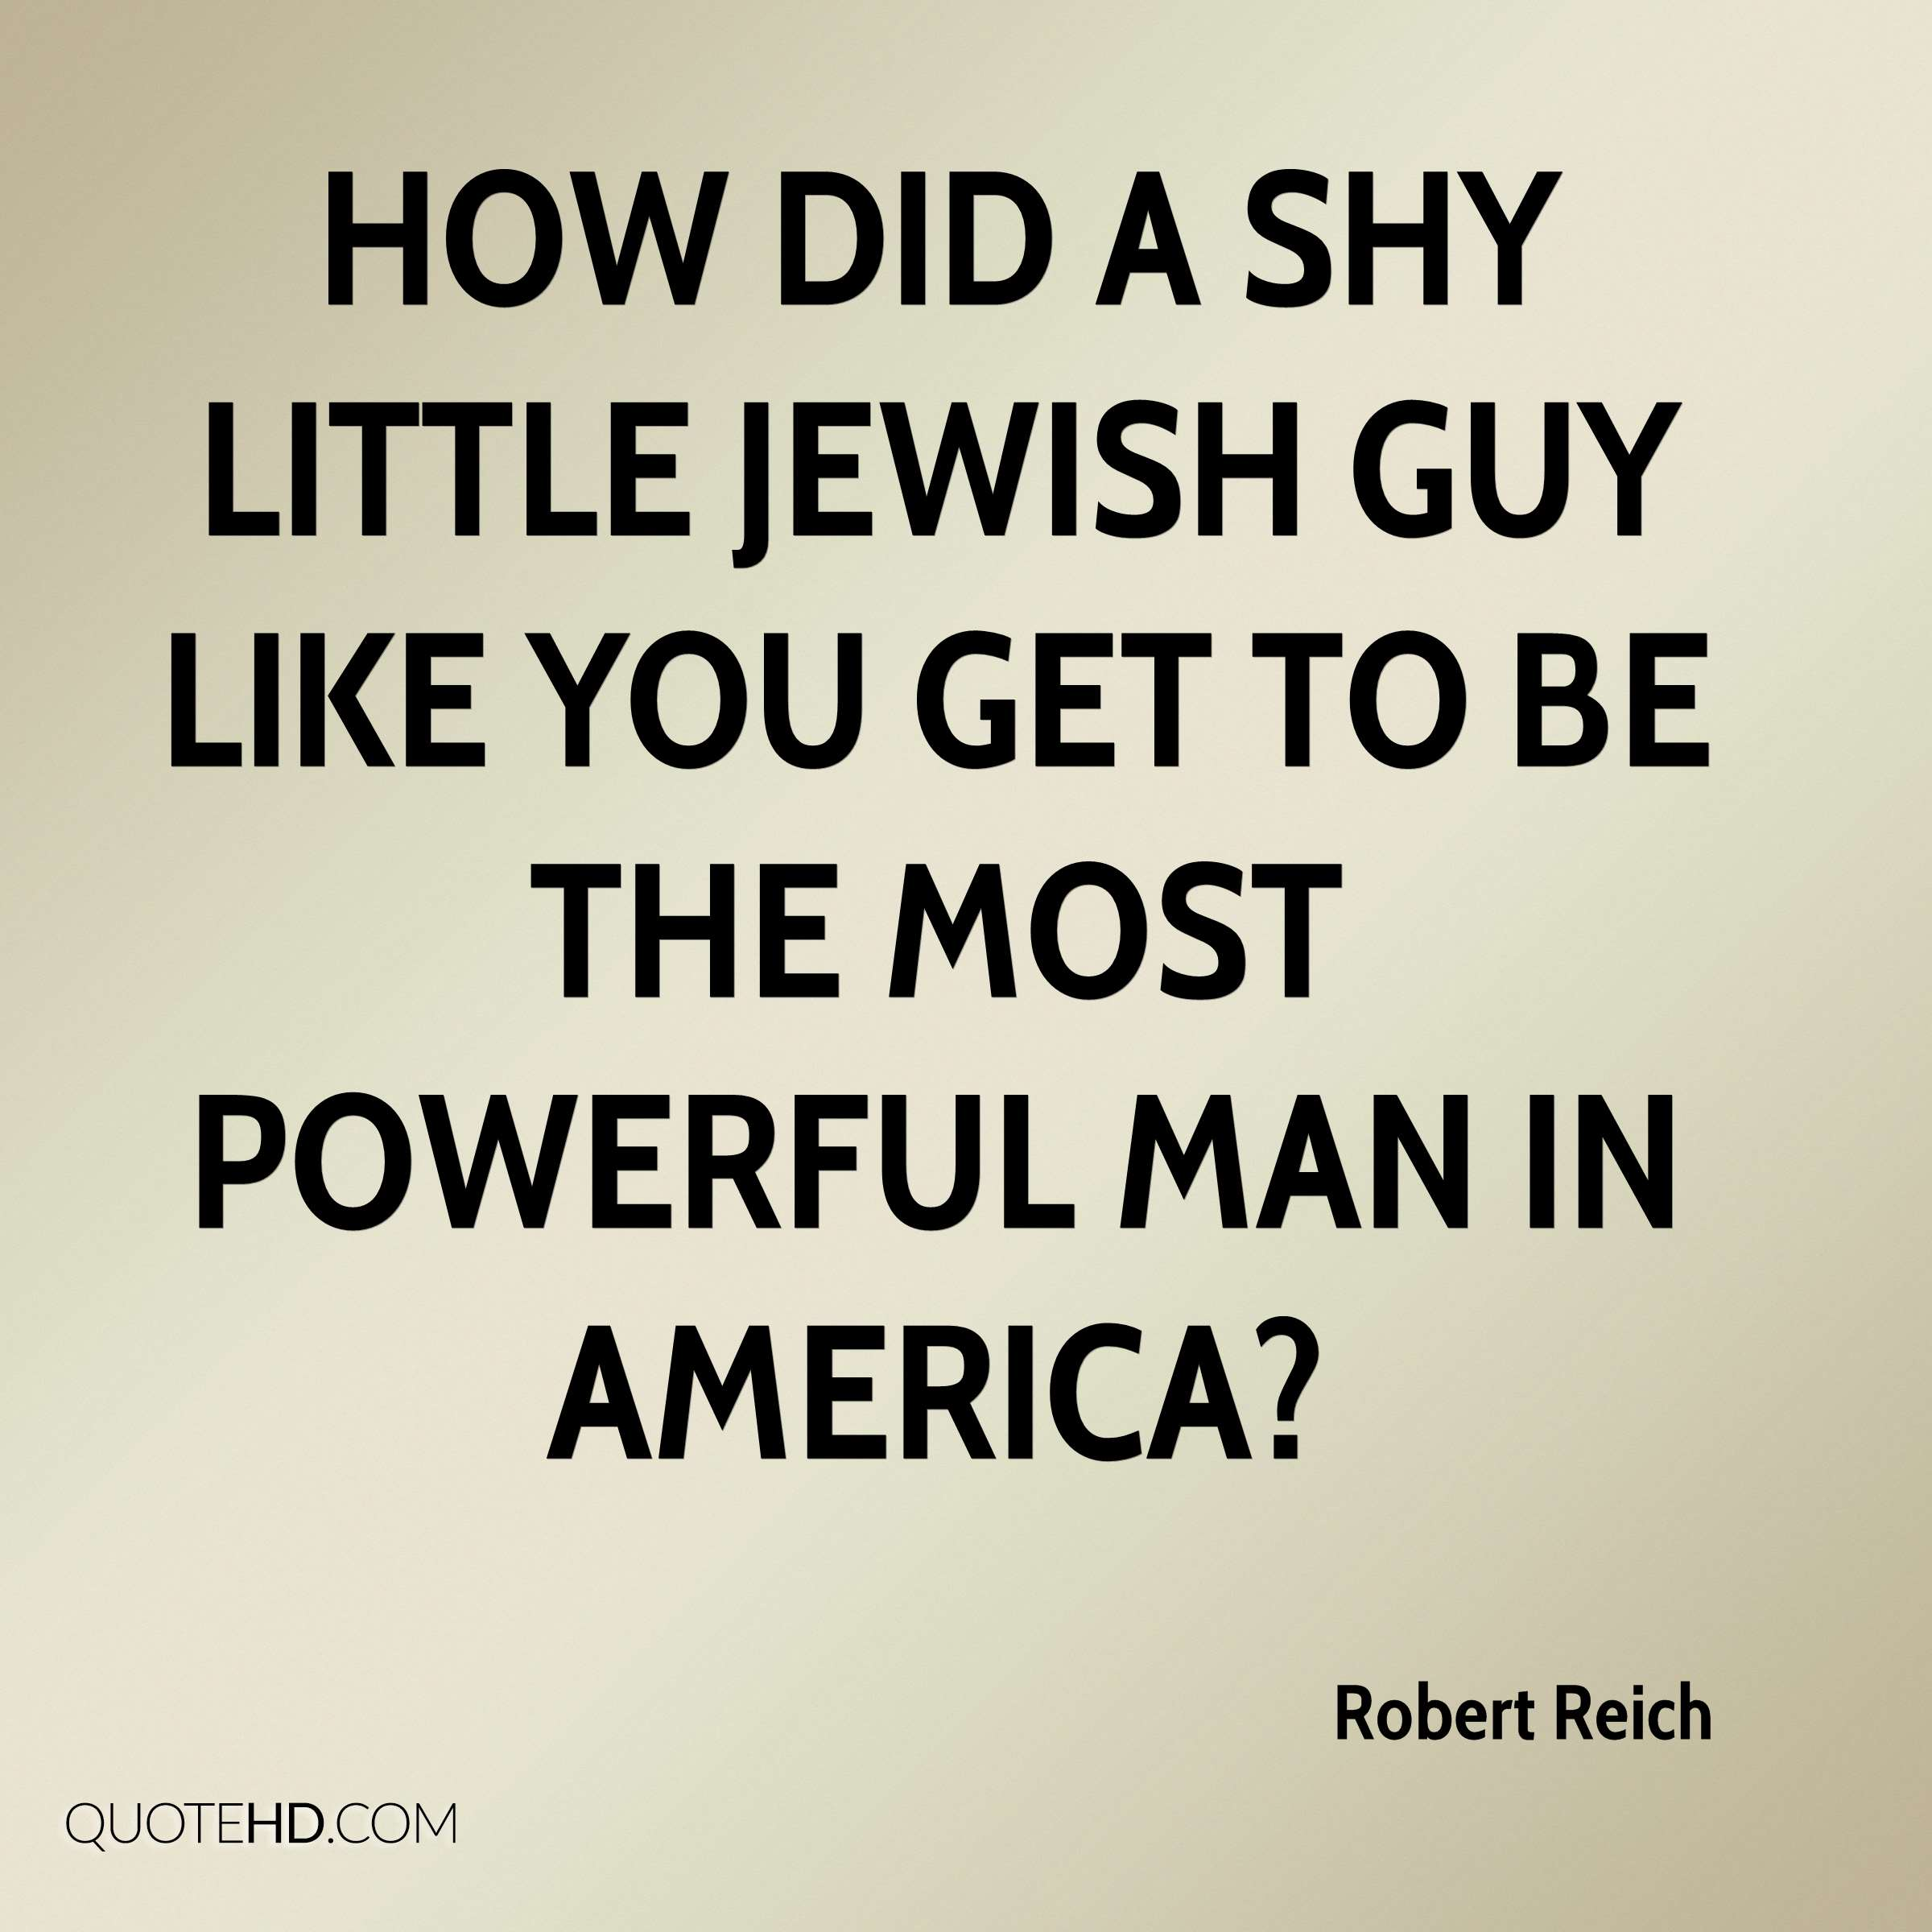 How did a shy little Jewish guy like you get to be the most powerful man in America?